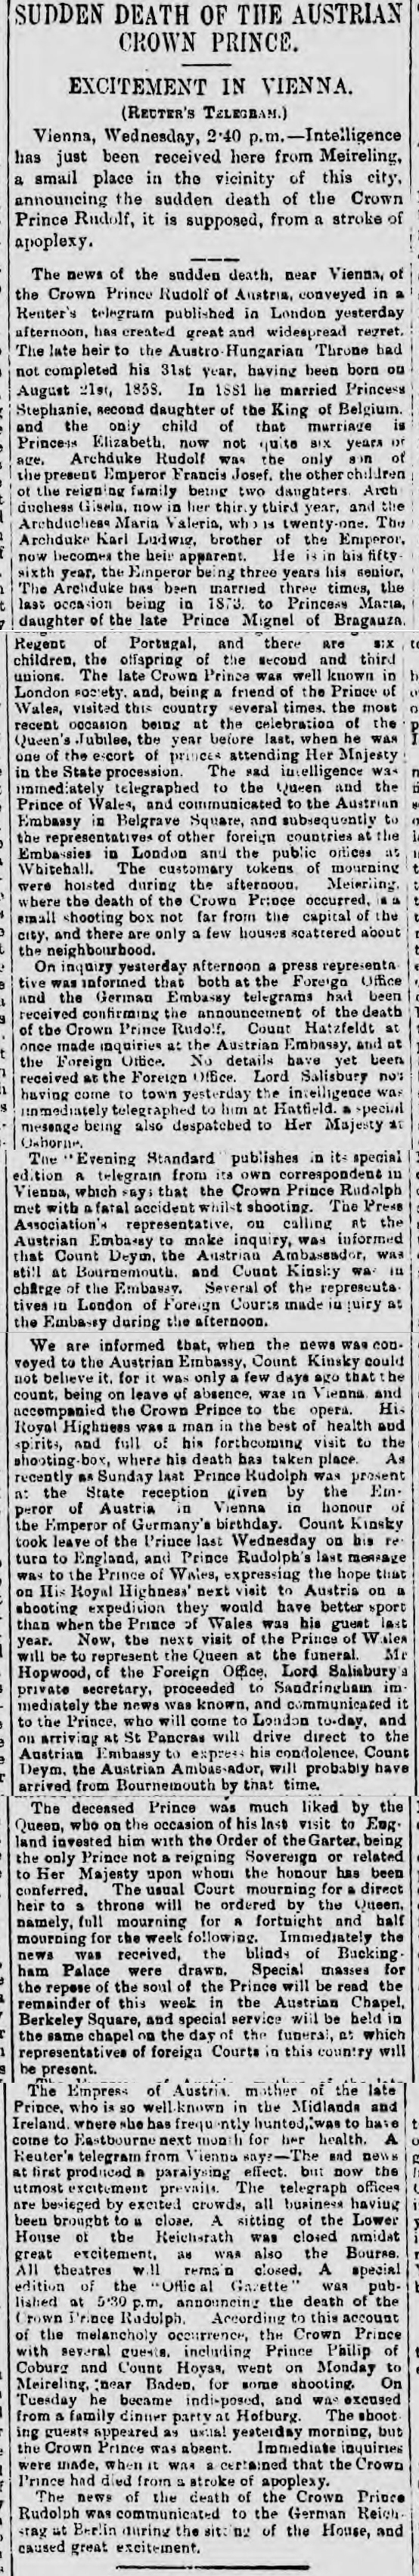 newspaper newspaper on the deaths of archduke rudolf and mary vetsara